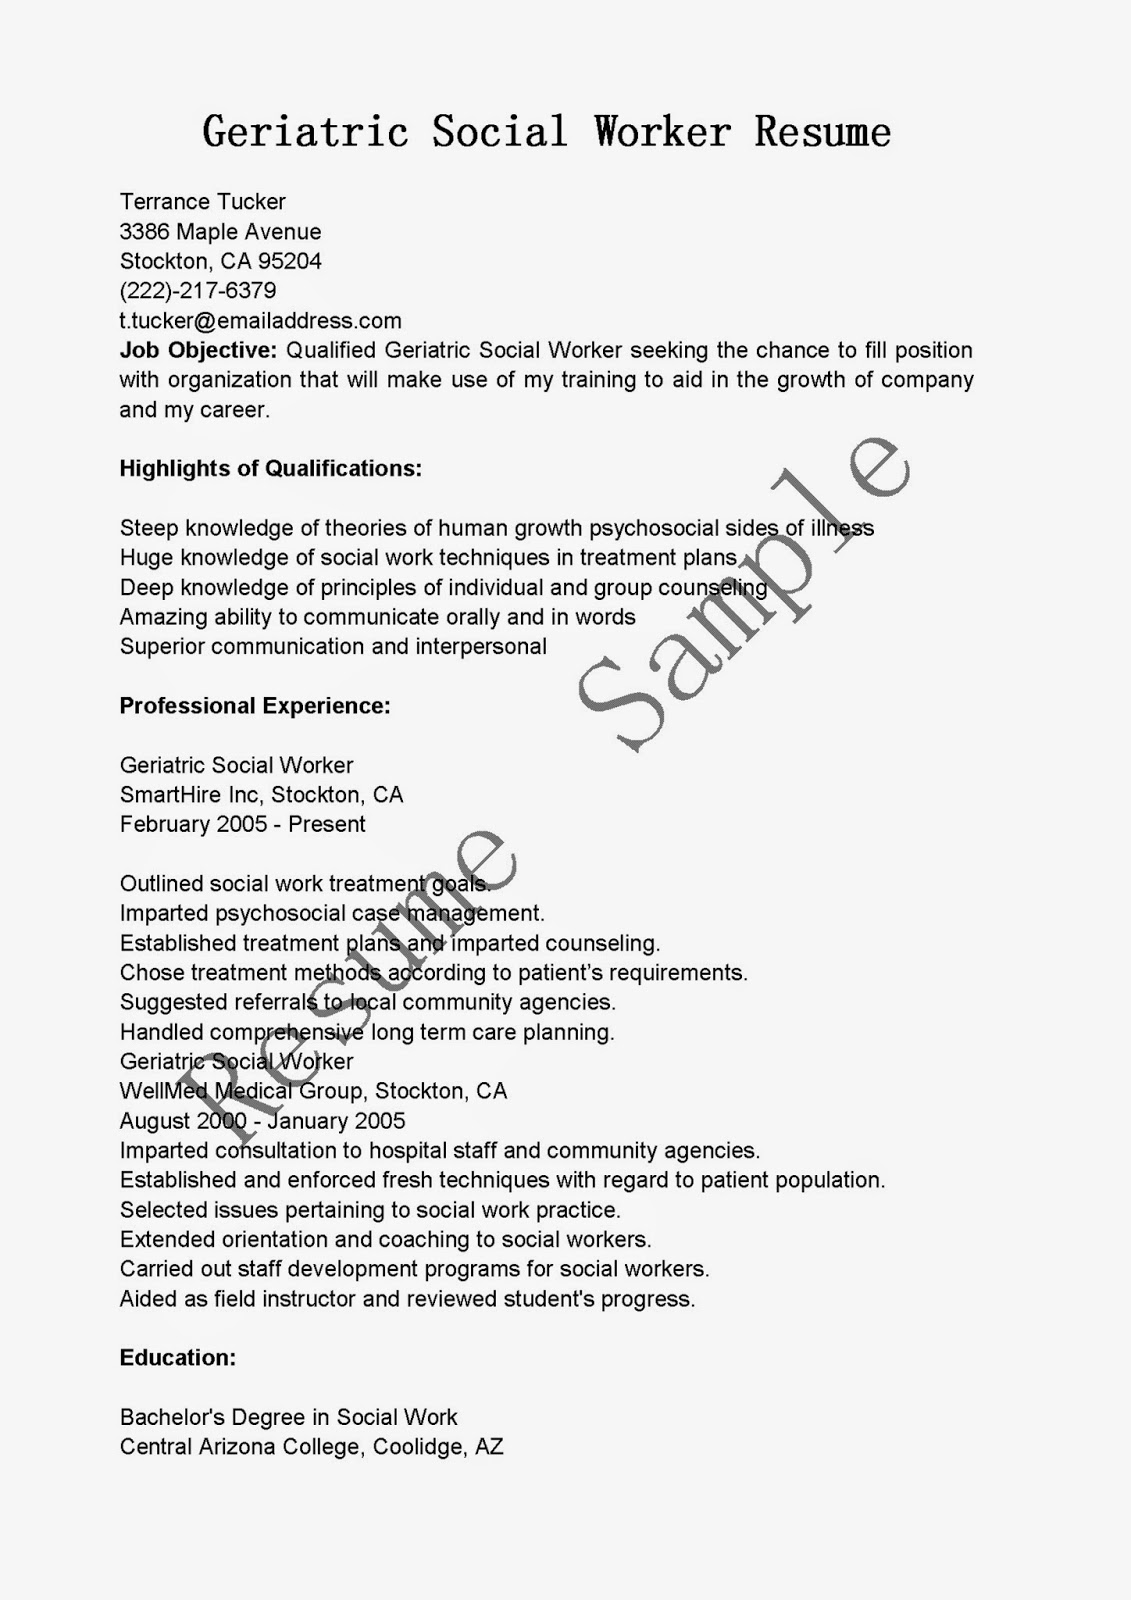 Social Worker Resume Examples Expository Essay Writing Get Help And Save Your Time